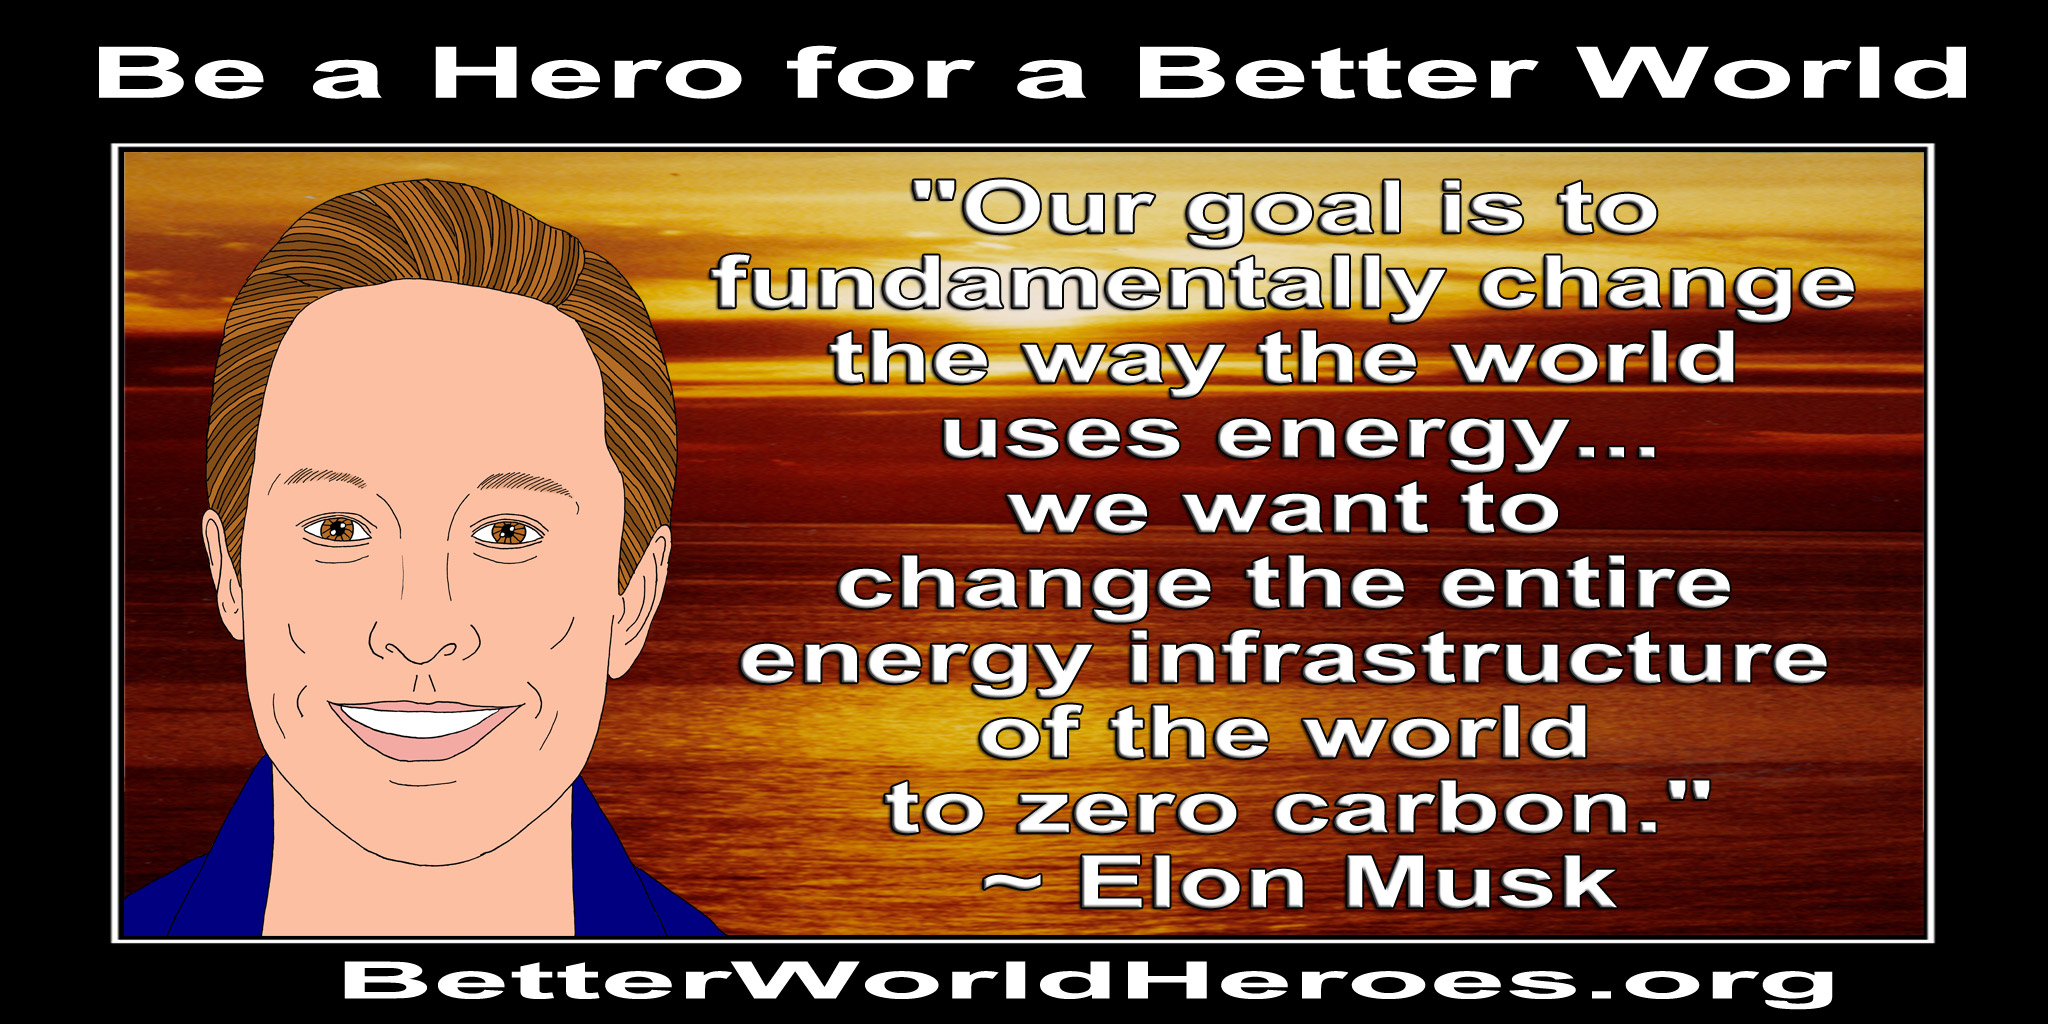 better world quotes energy the use of solar energy has not been opened up because the oil industry does not own the sun